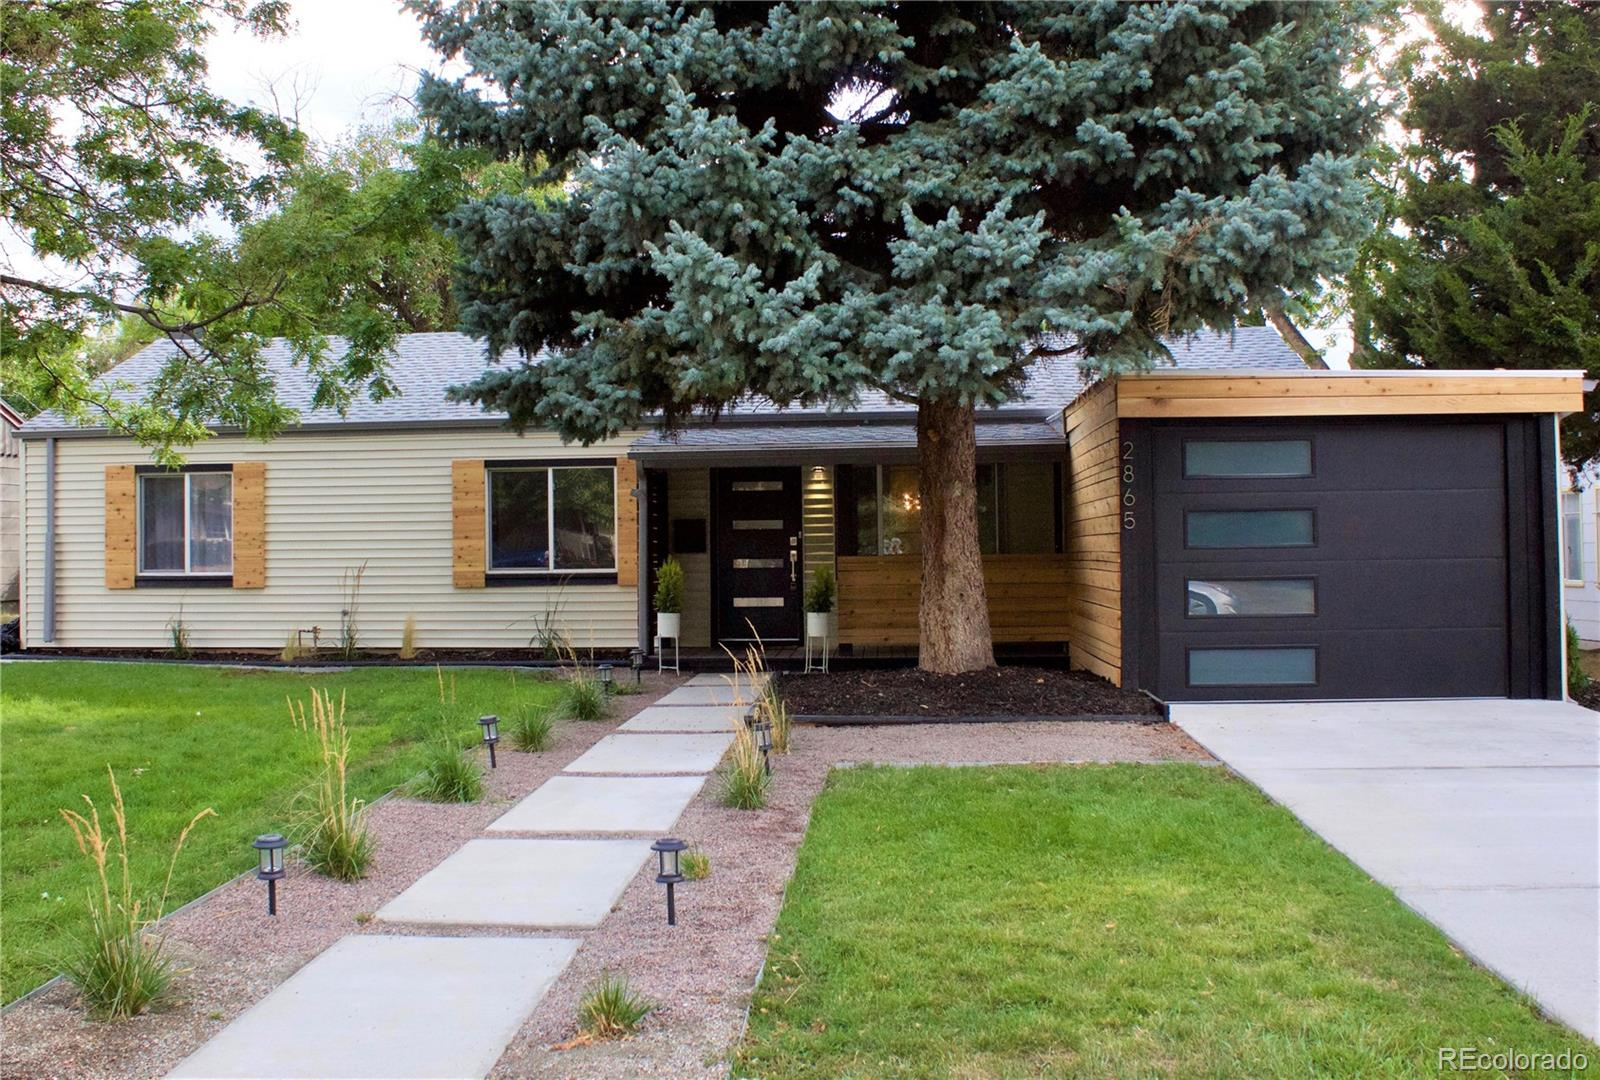 2865 S Cherry Way Property Photo - Denver, CO real estate listing